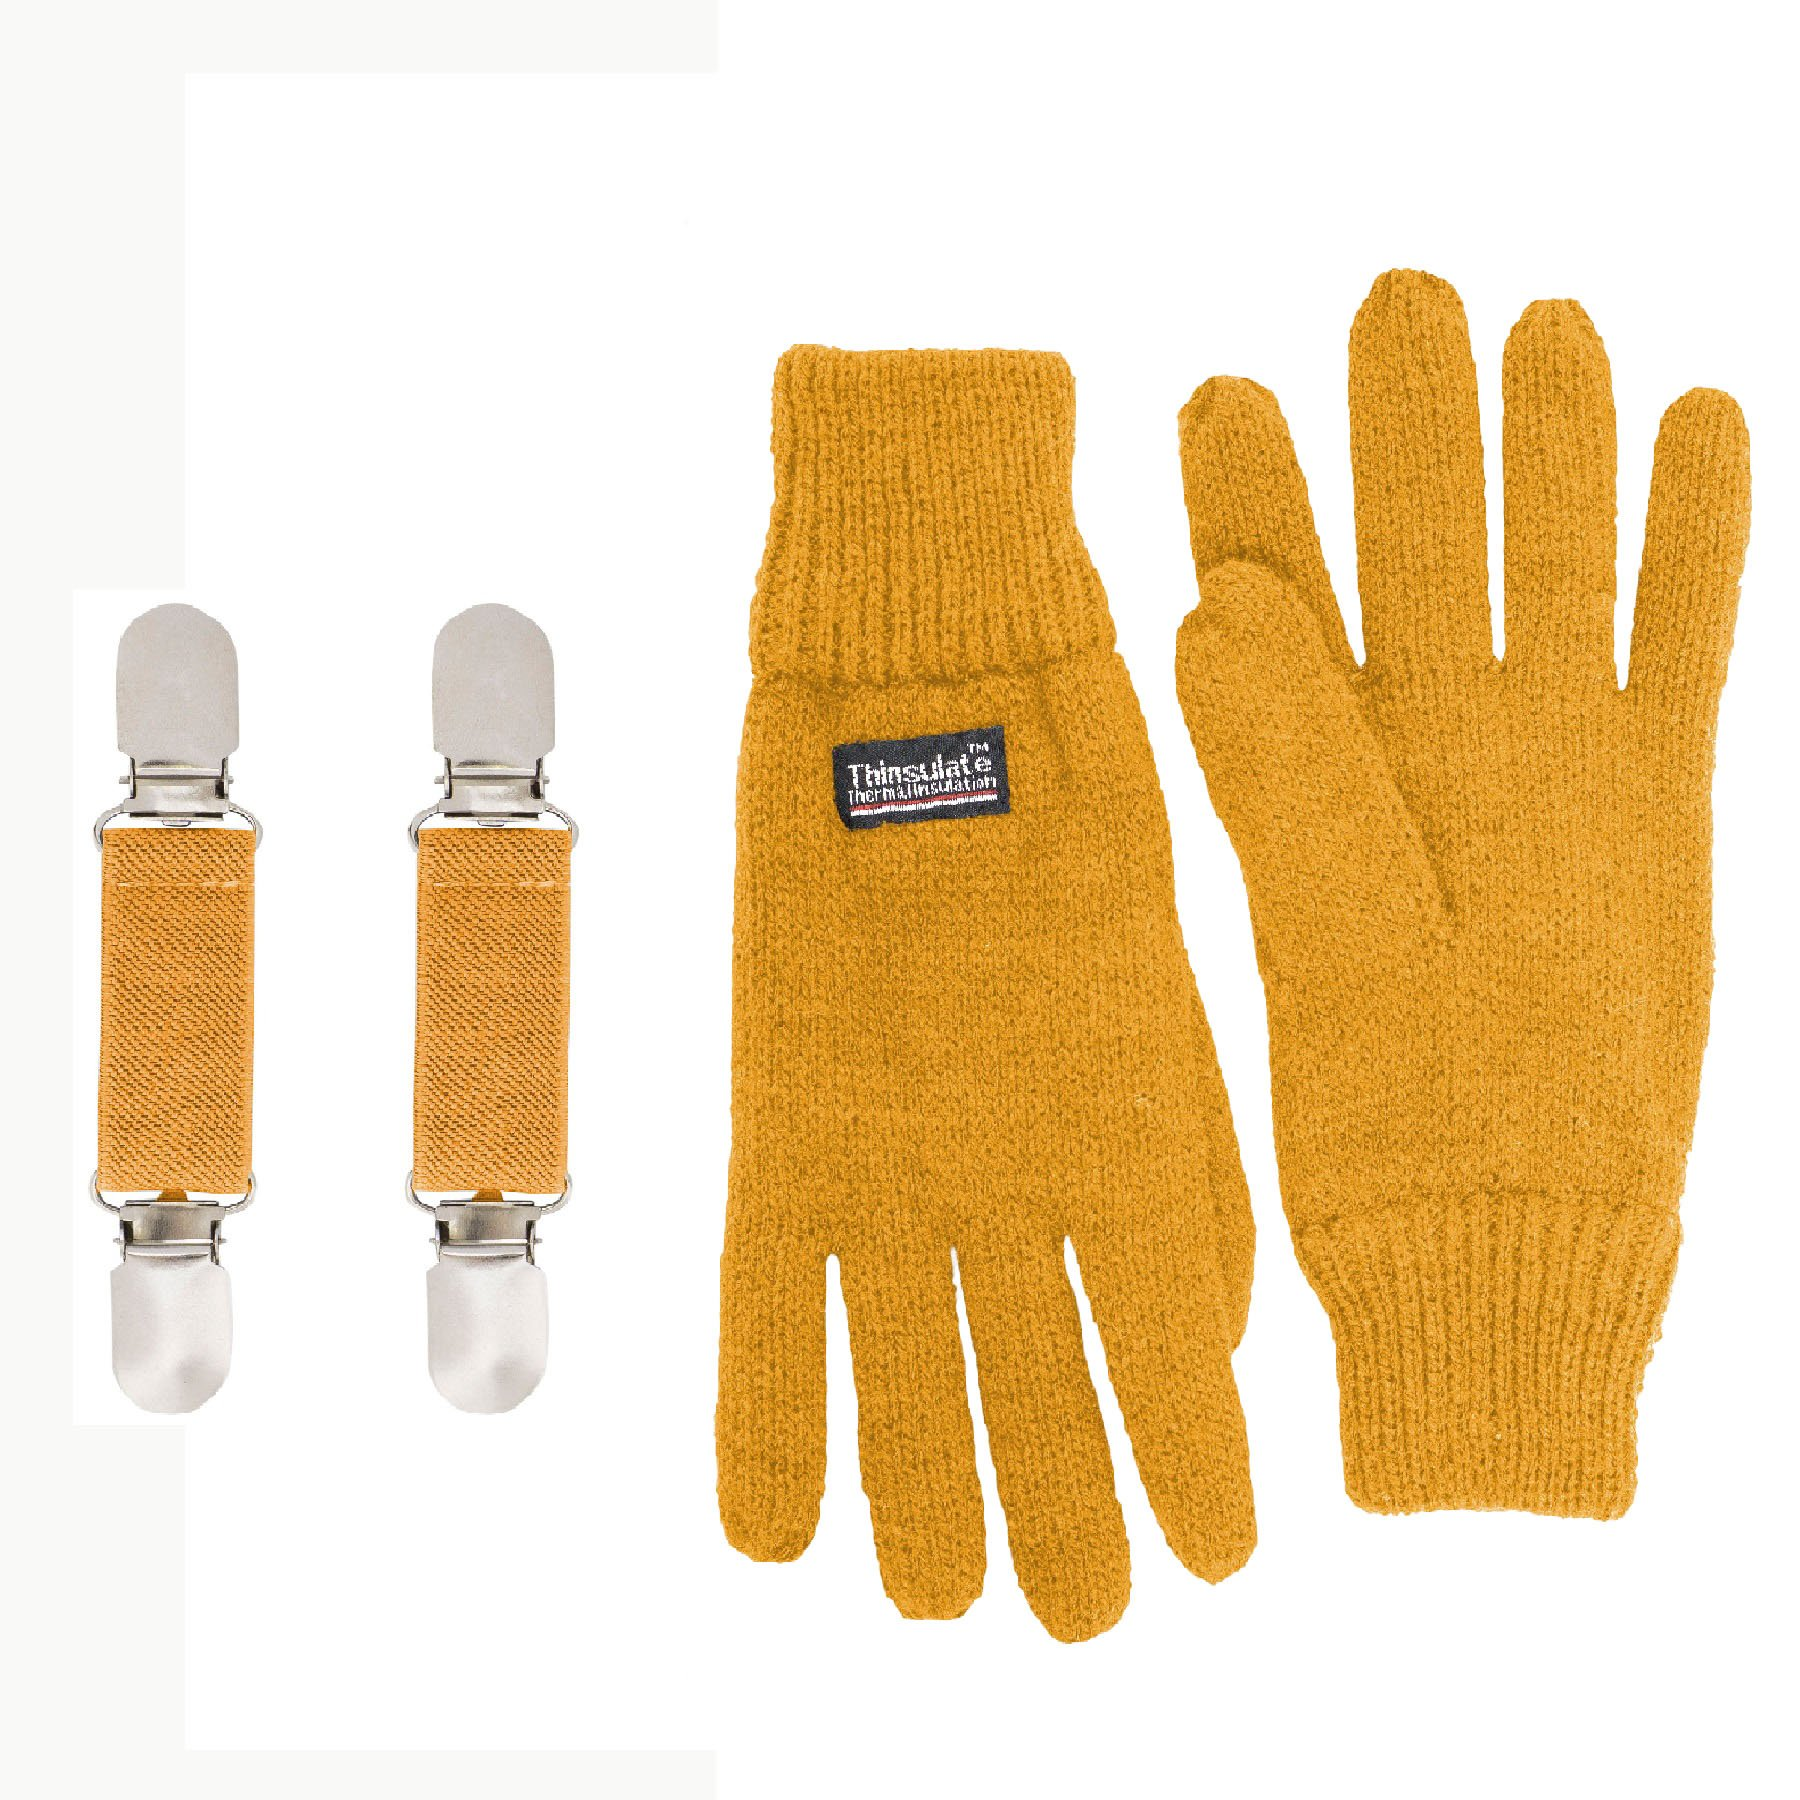 Sanremo Fashions Boys Knitted Fleece Lined Mittens